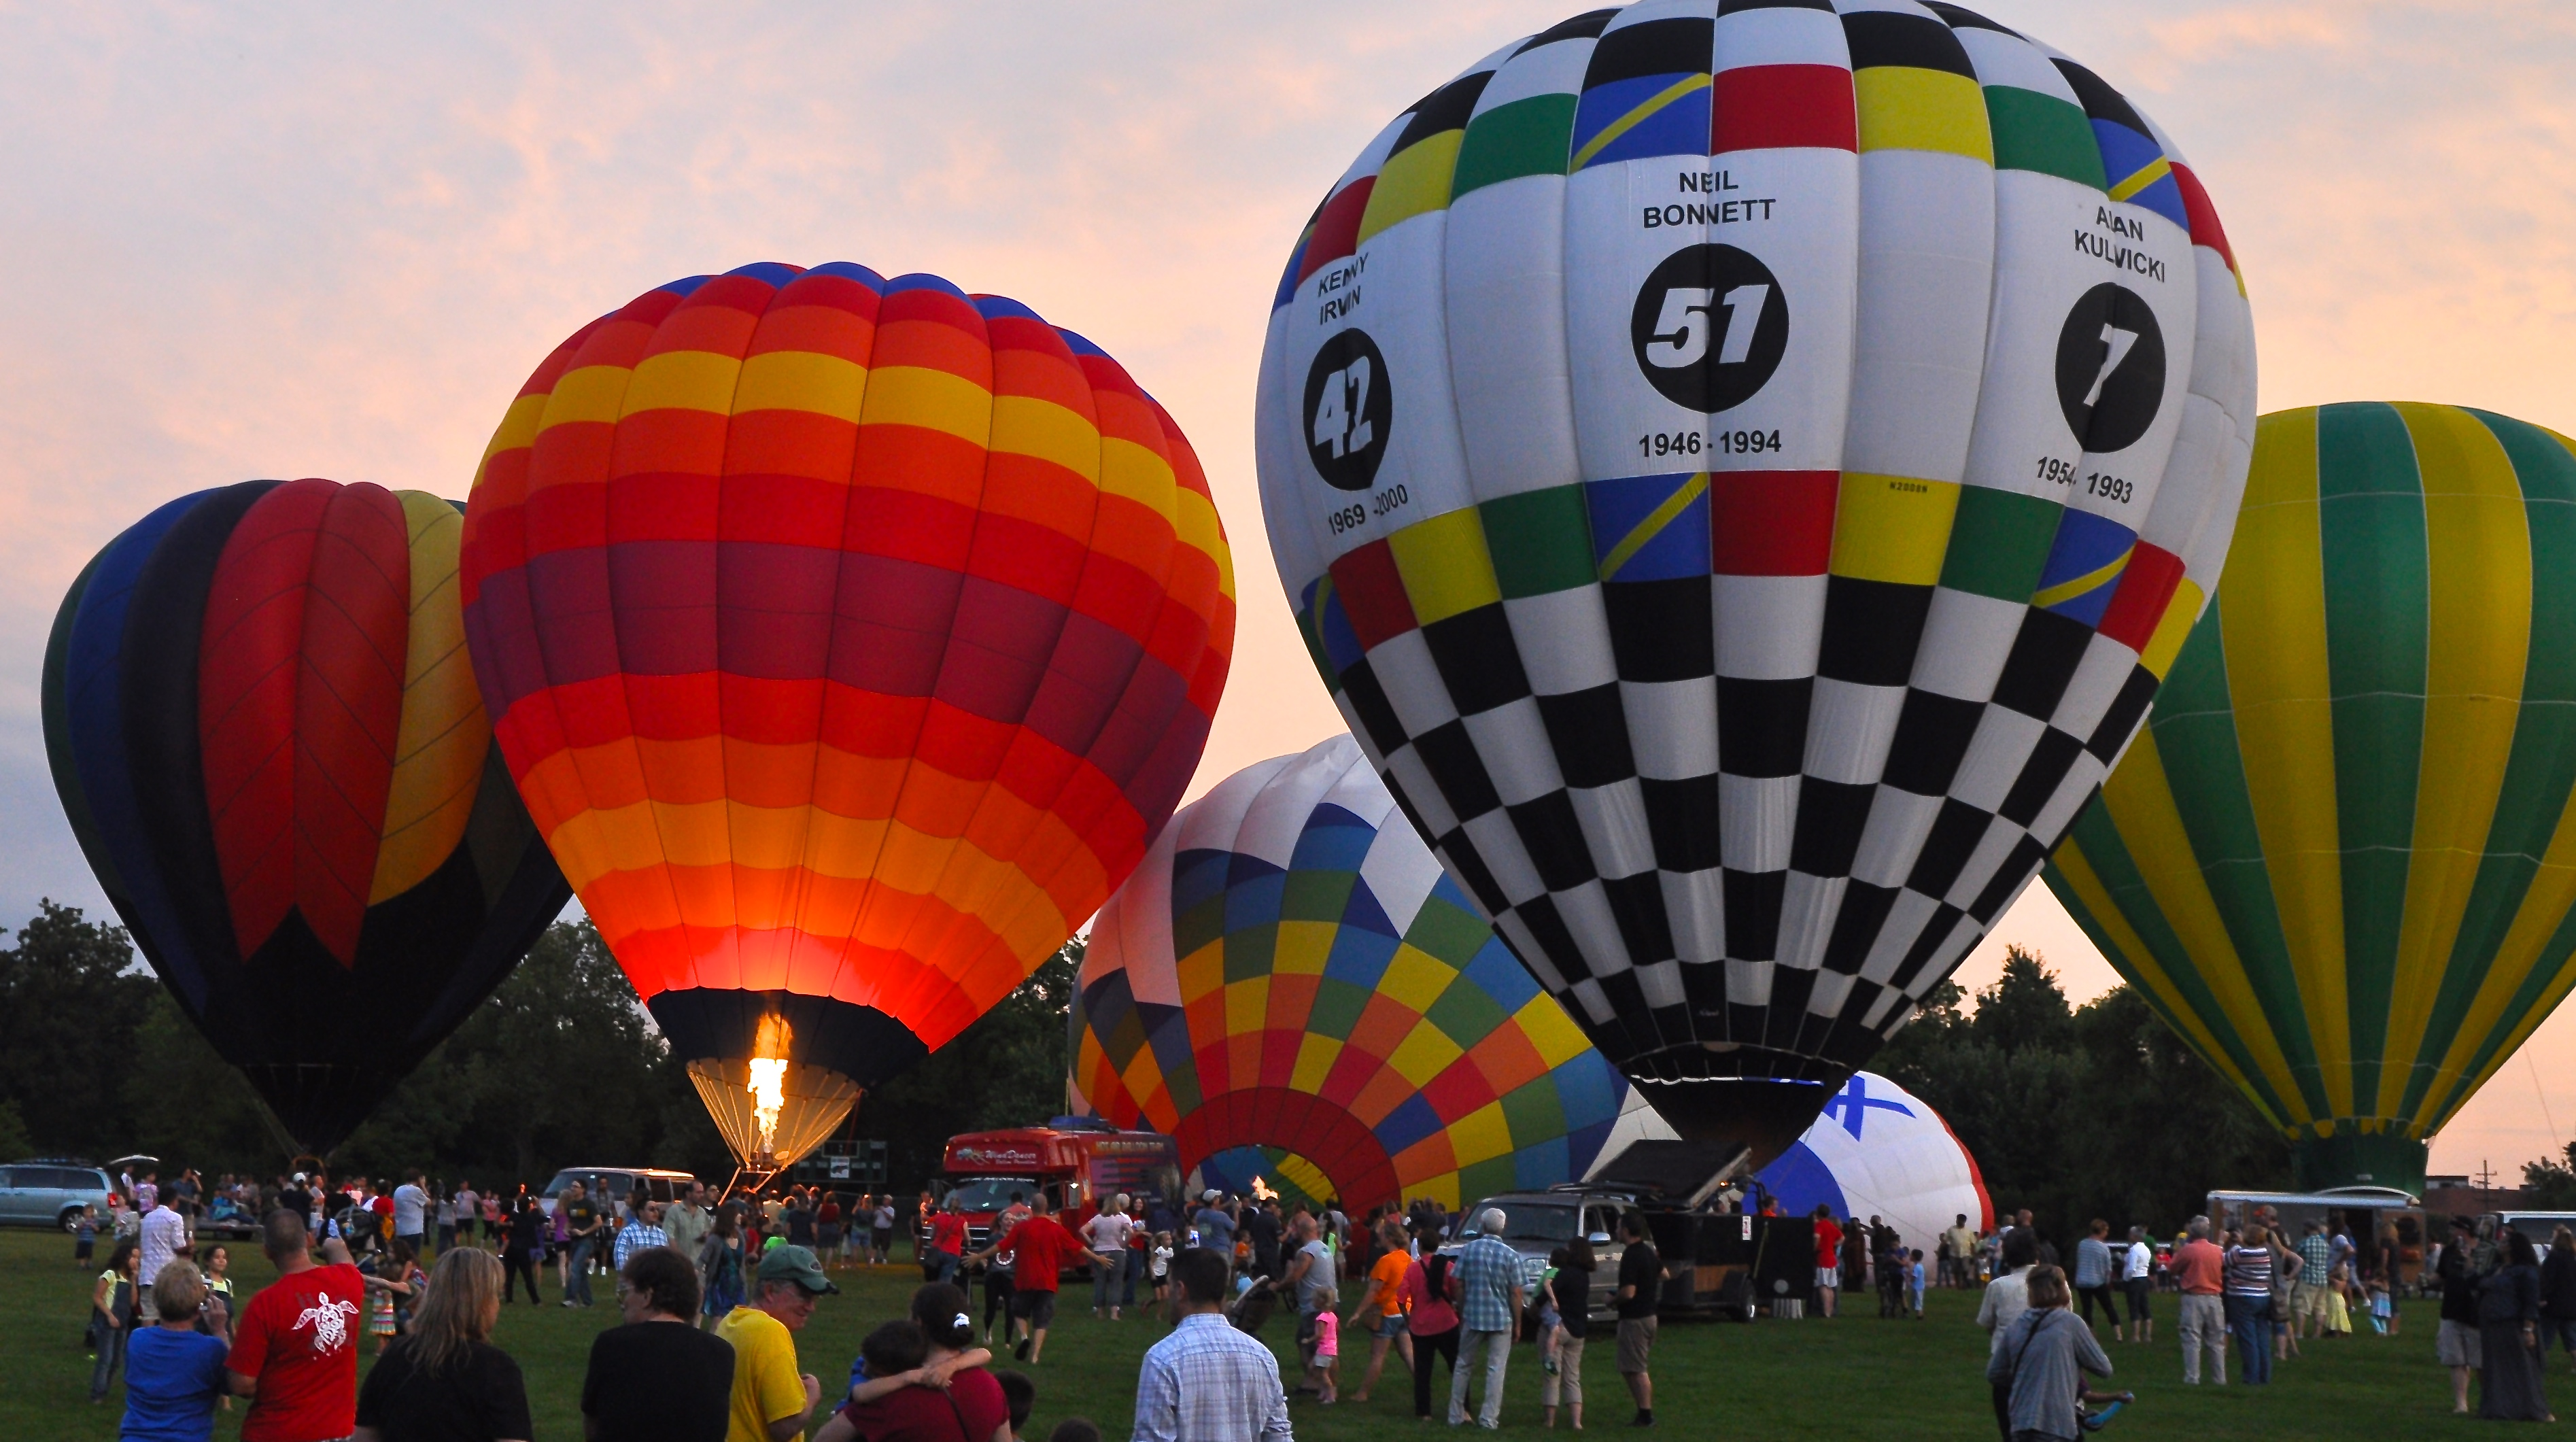 7th Annual Grayslake Color Aloft Balloon Festival